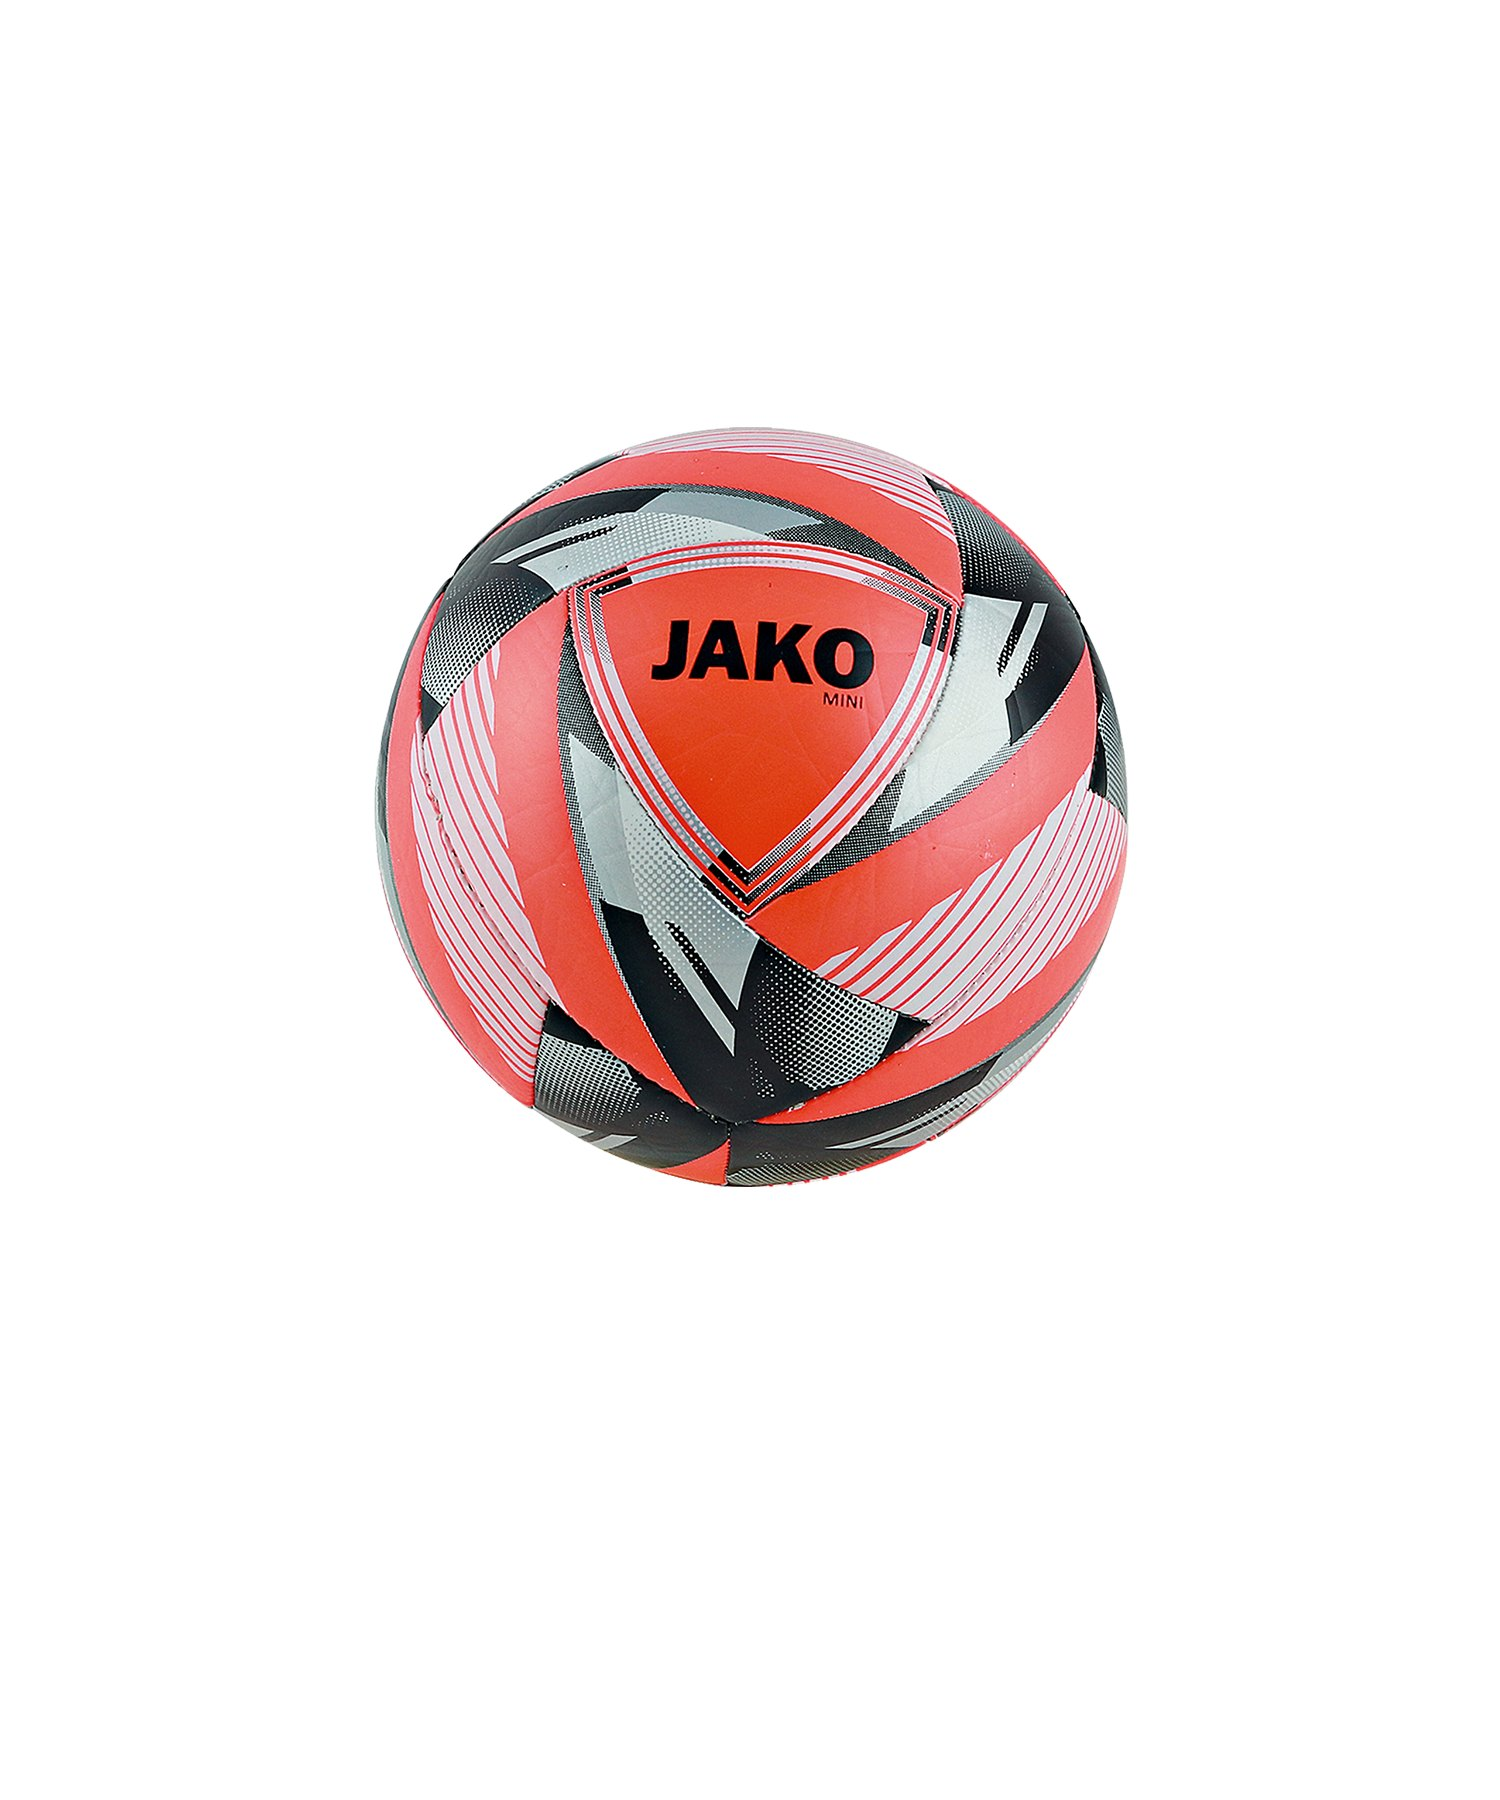 Jako Miniball Neon Orange Silber F18 - Orange